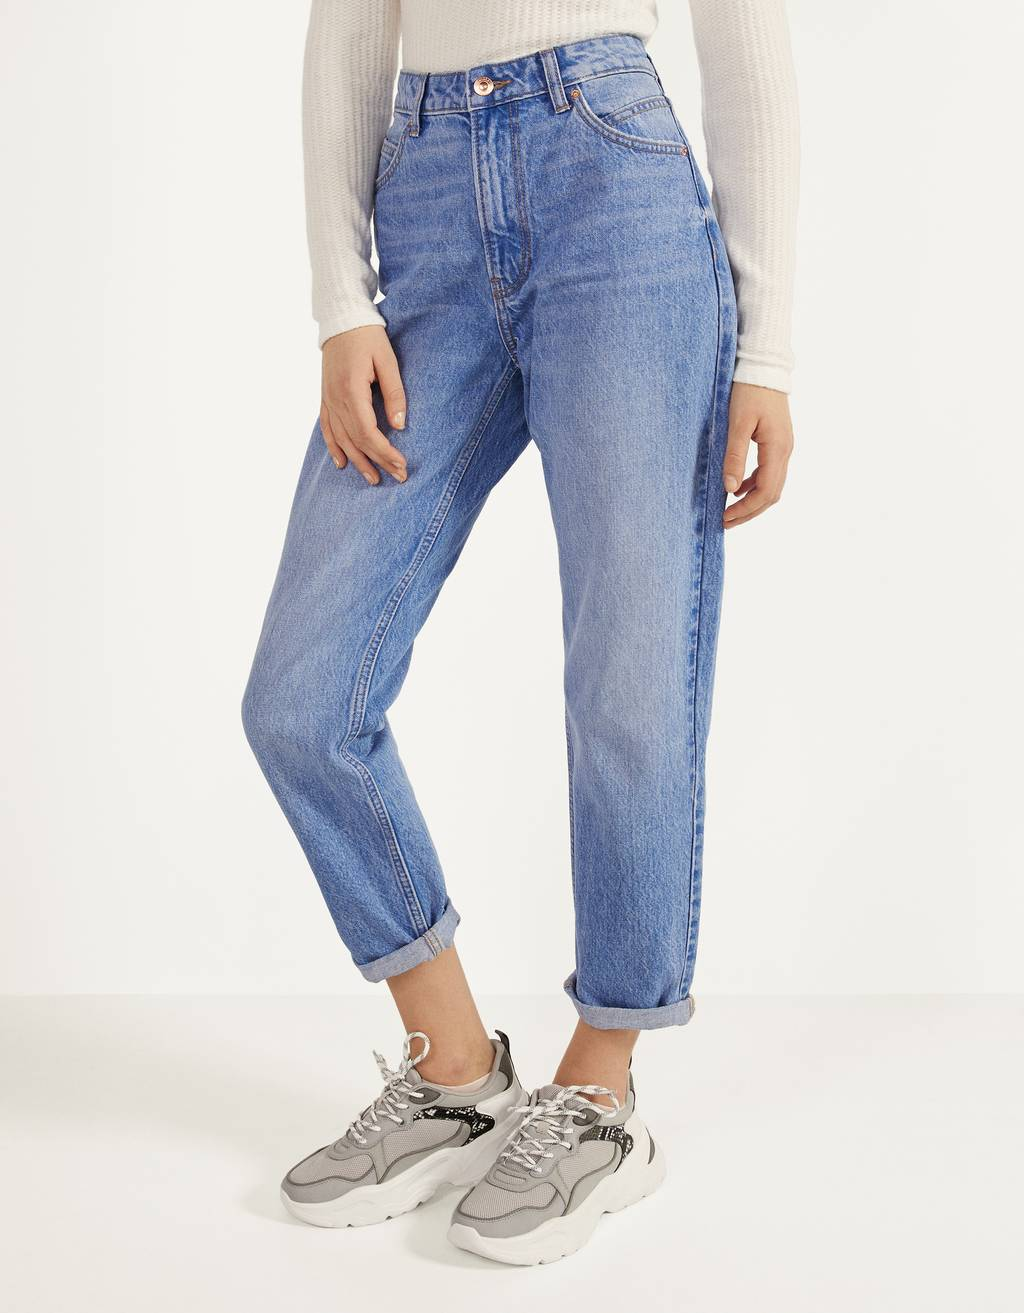 denim style: mom jeans